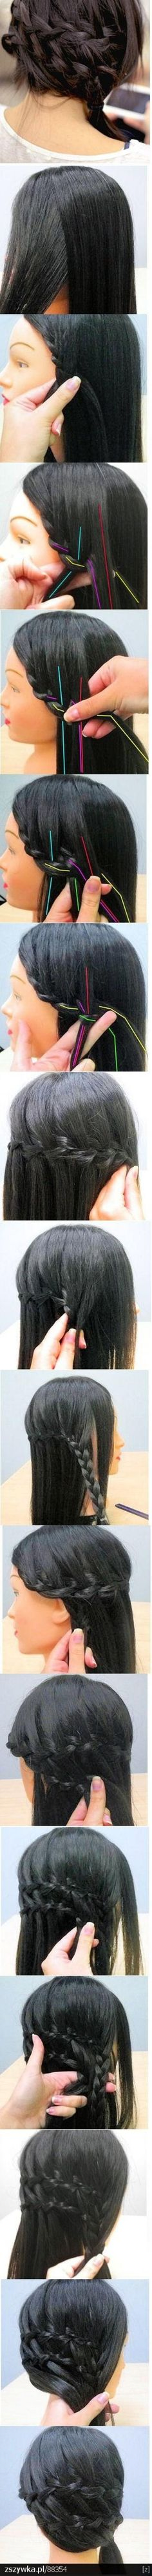 Braids to the side and around the head. I'm sure it's rather complicated and a little tricky. But looks cool.